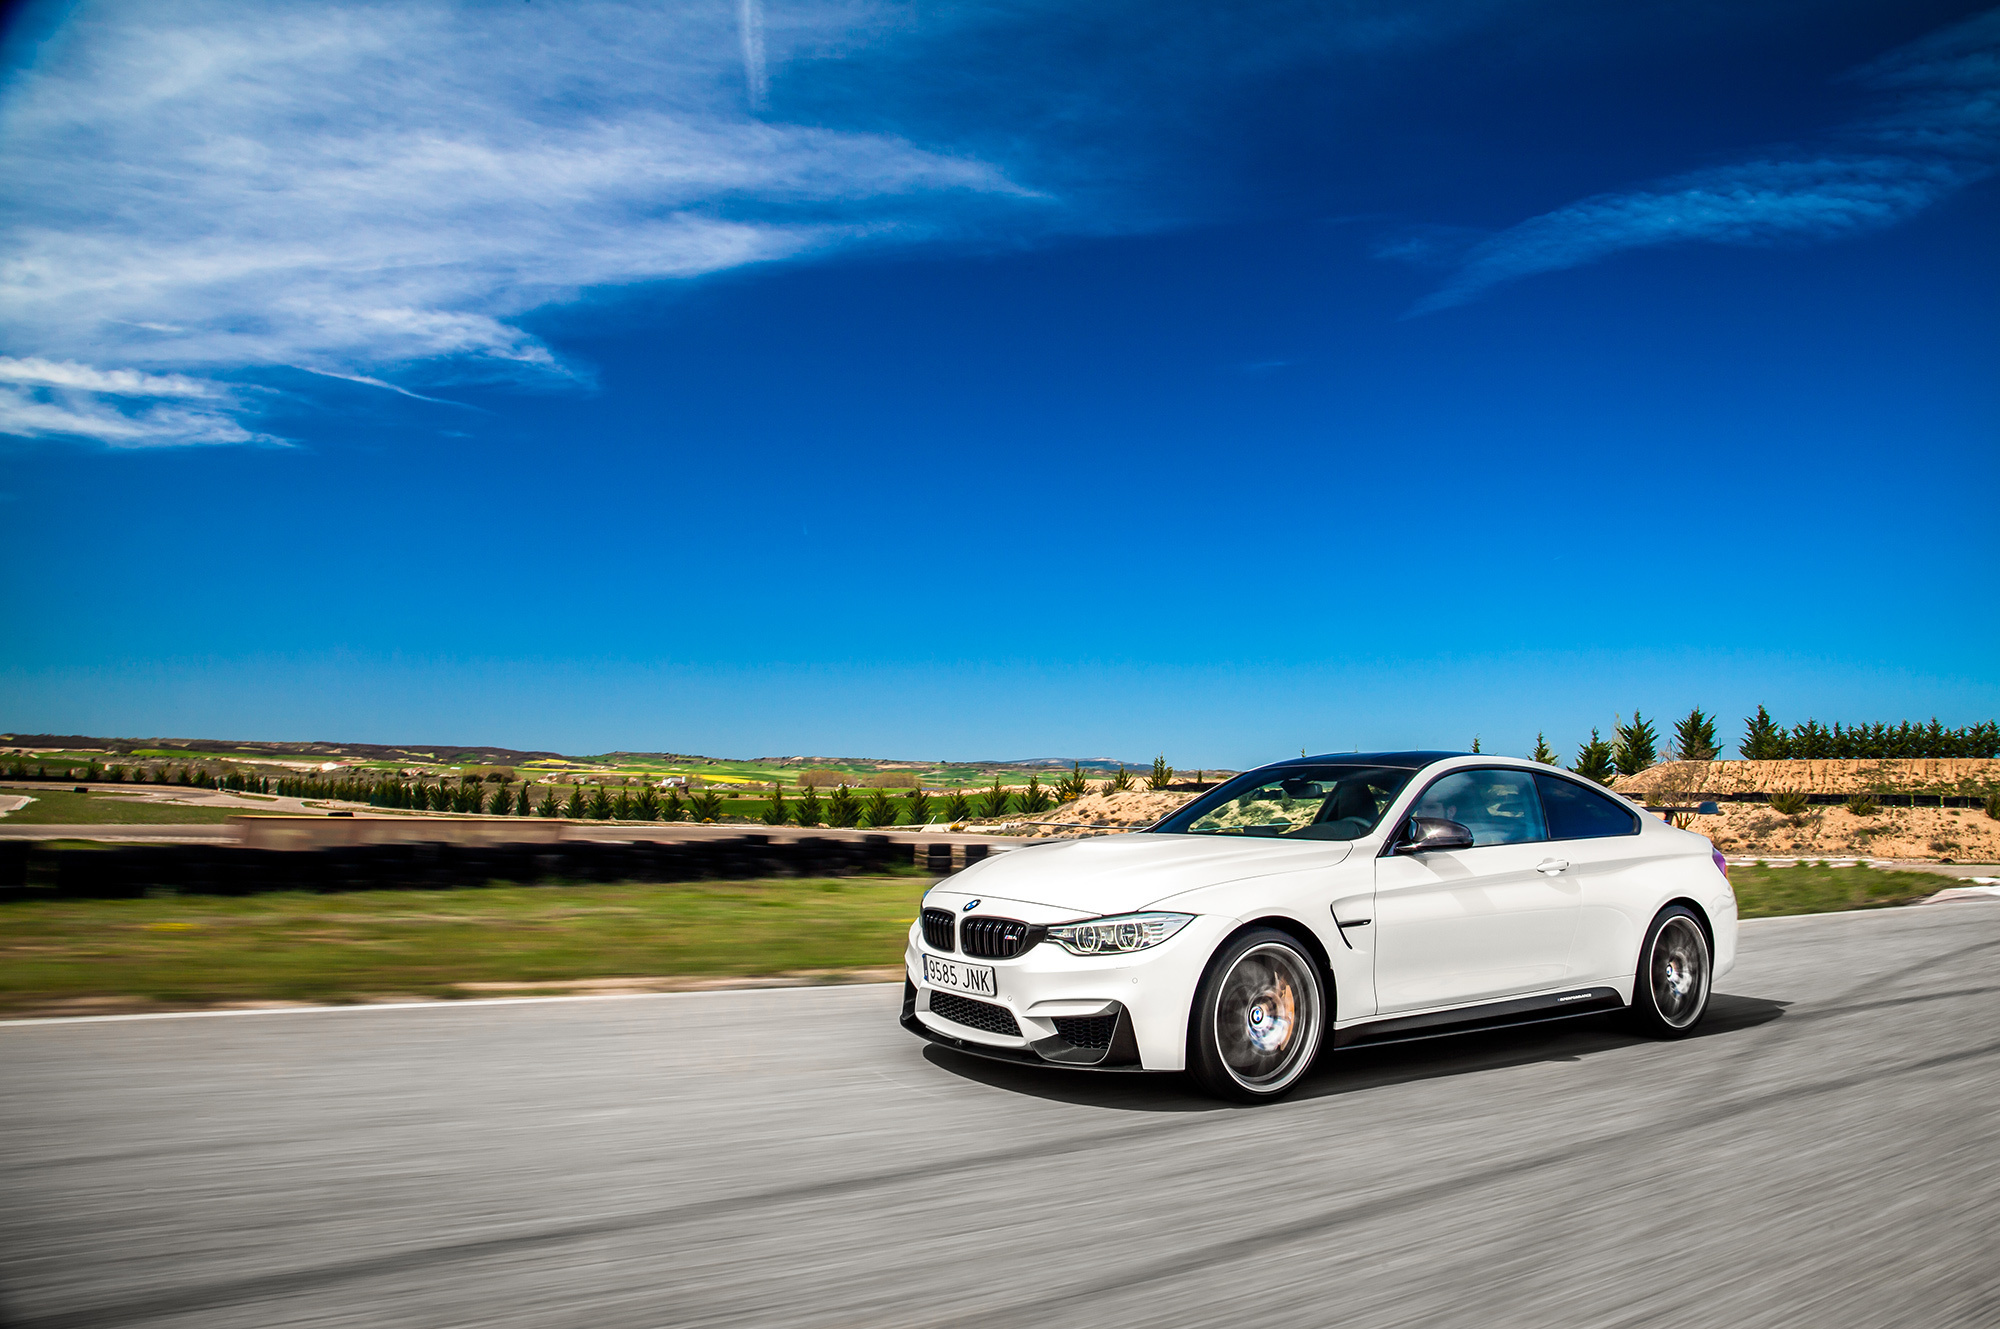 BMW M4 Competition Sport Wallpapers Images Photos Pictures ...